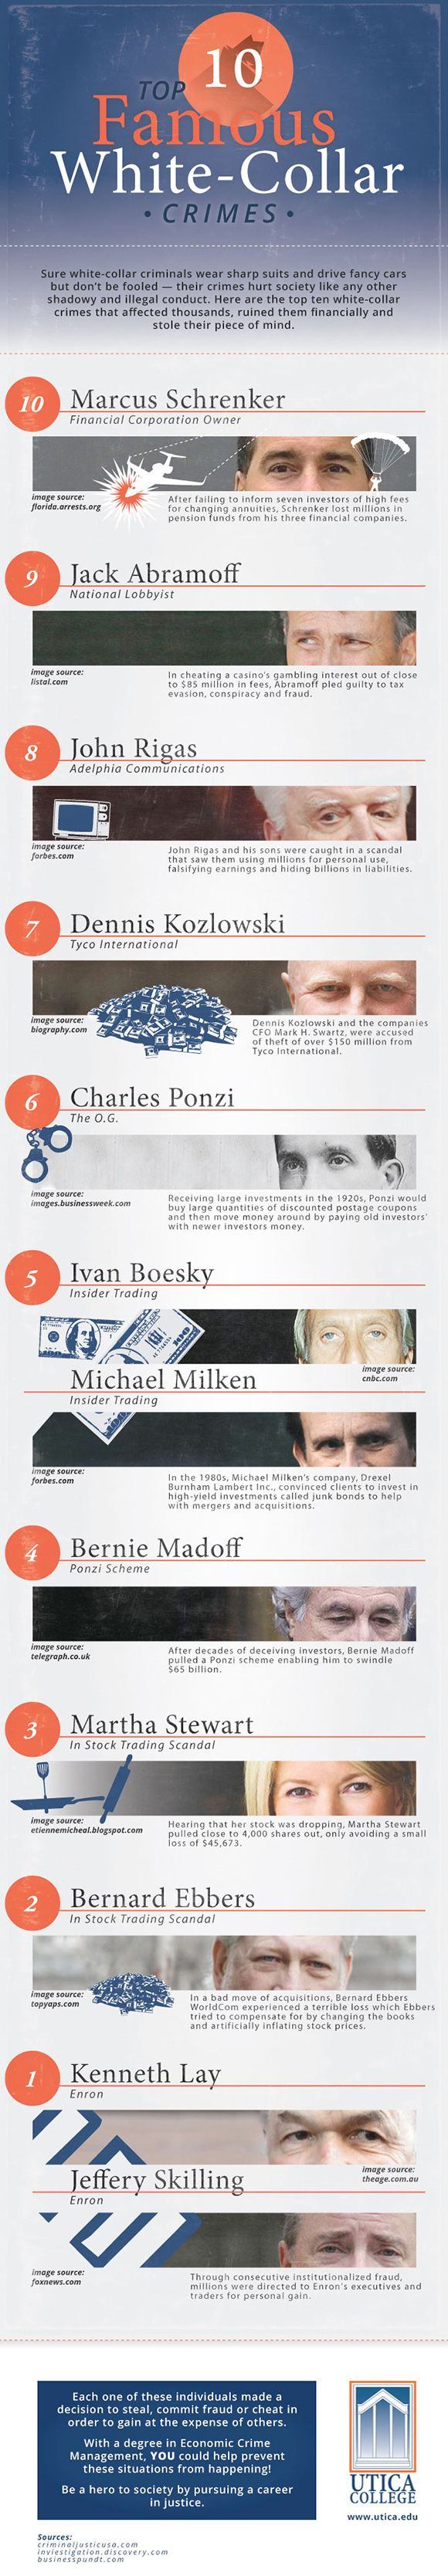 best ideas about jack abramoff political quotes top 10 famous white collar crimes infographic includes marcus schrenker jack abramoff